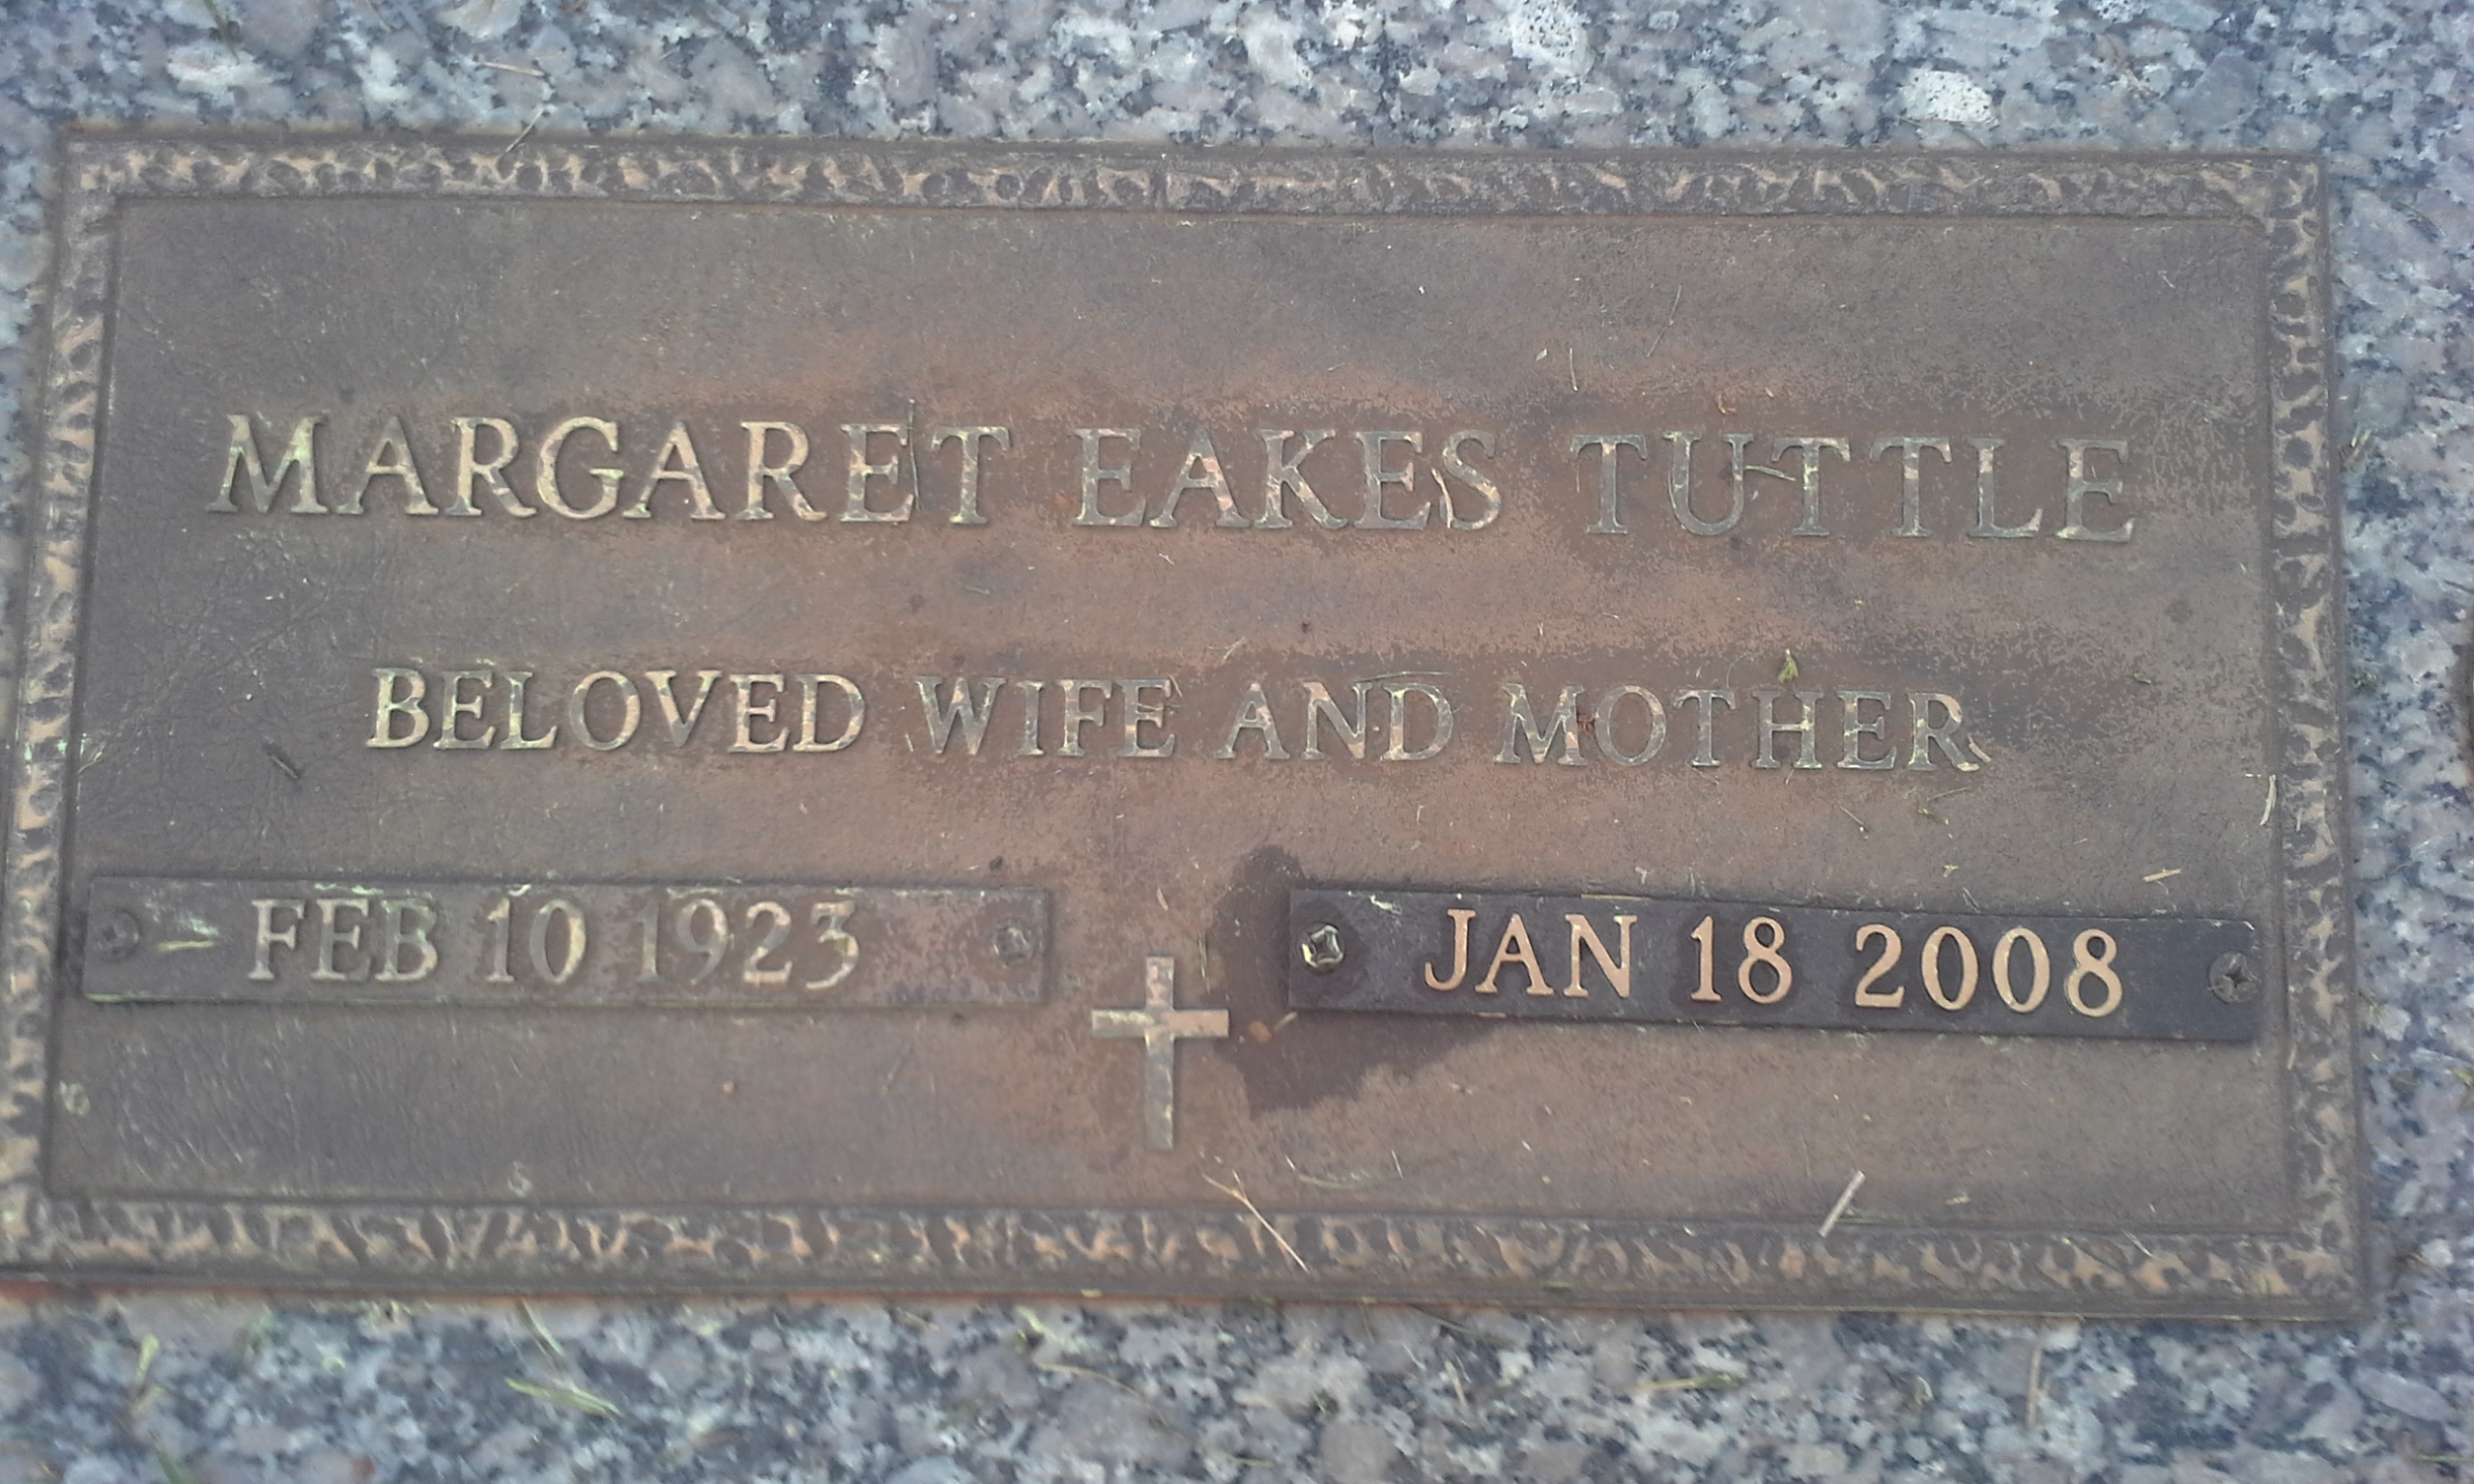 Margaret <i>Eakes</i> Tuttle